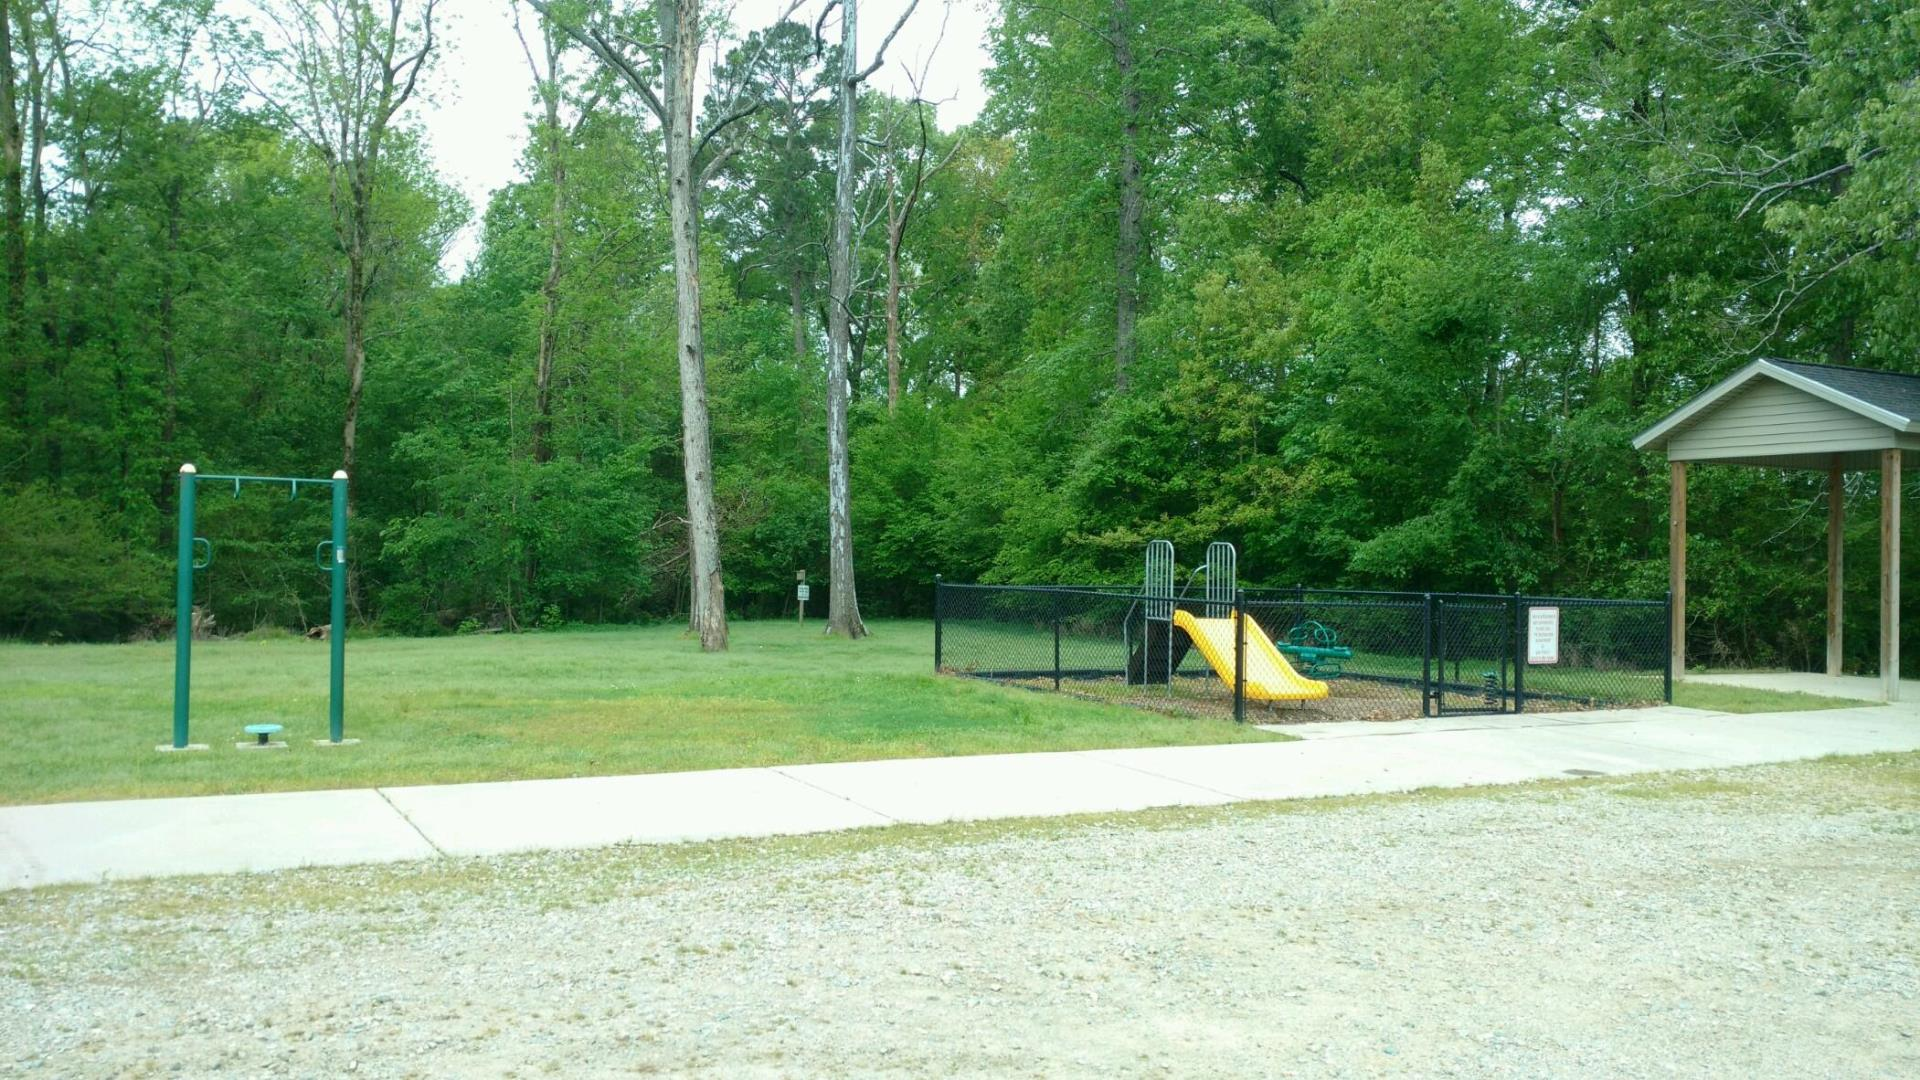 Playground area  at Stoney Creek Environmental Park